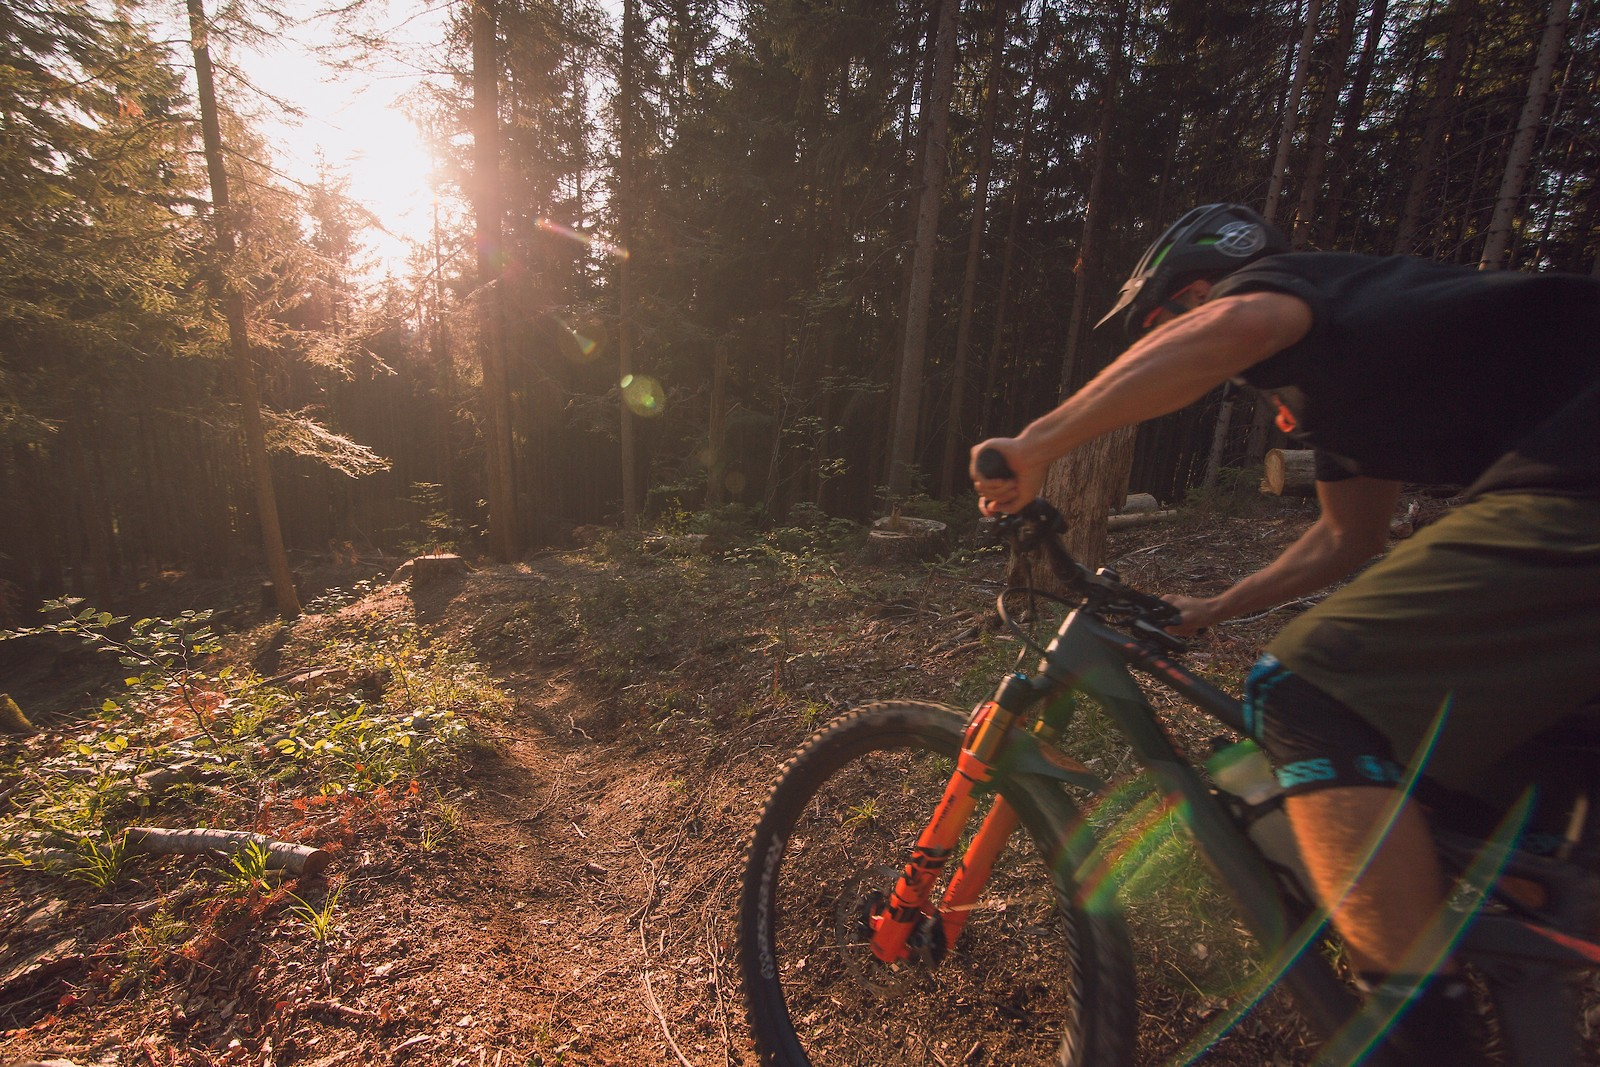 Into the sun - johnseehu - Mountain Biking Pictures - Vital MTB